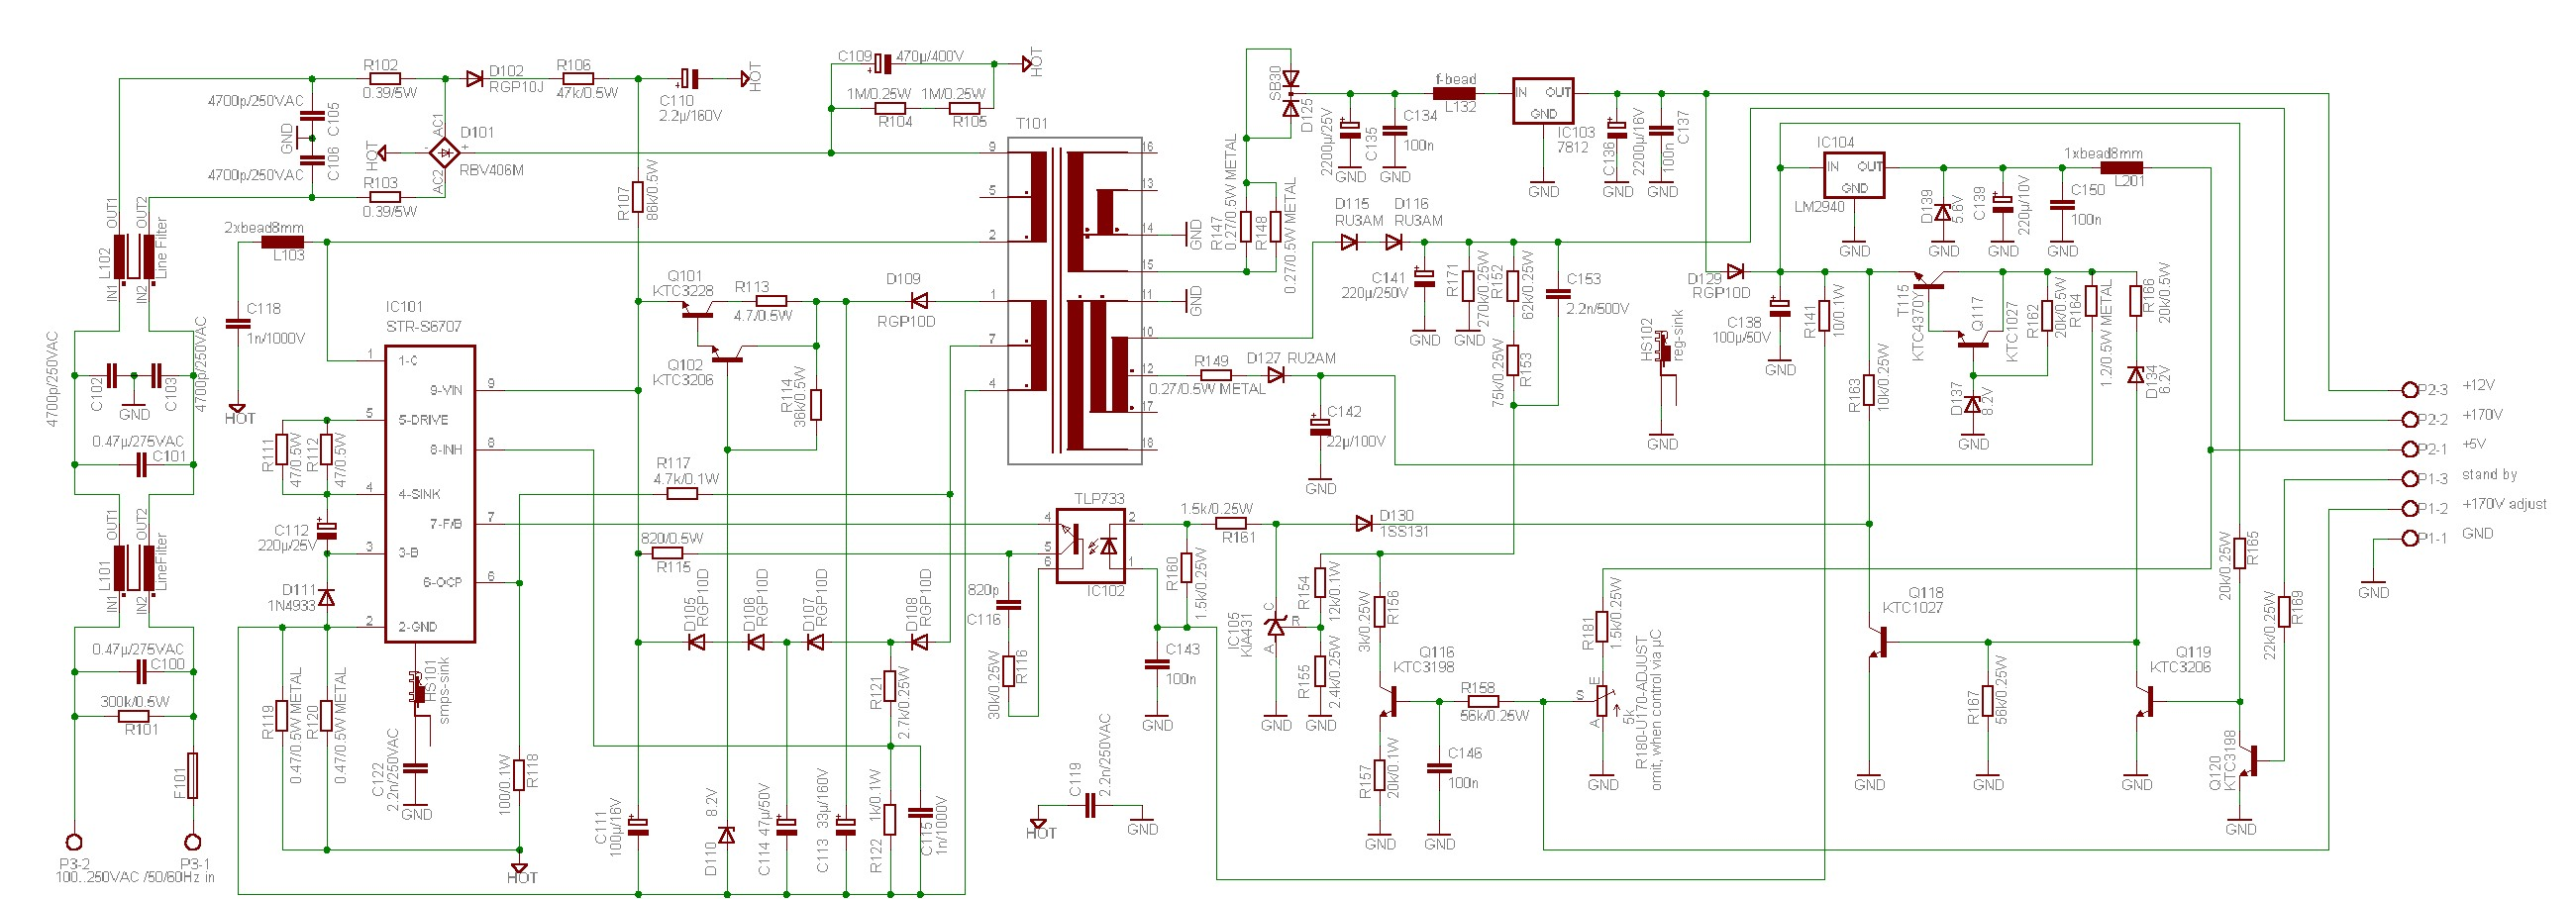 Nixie Wiring Diagram 28 Images Auto Electrical Updated Clock Schematic Ketturi Electronics Cd47 Rodan Tube